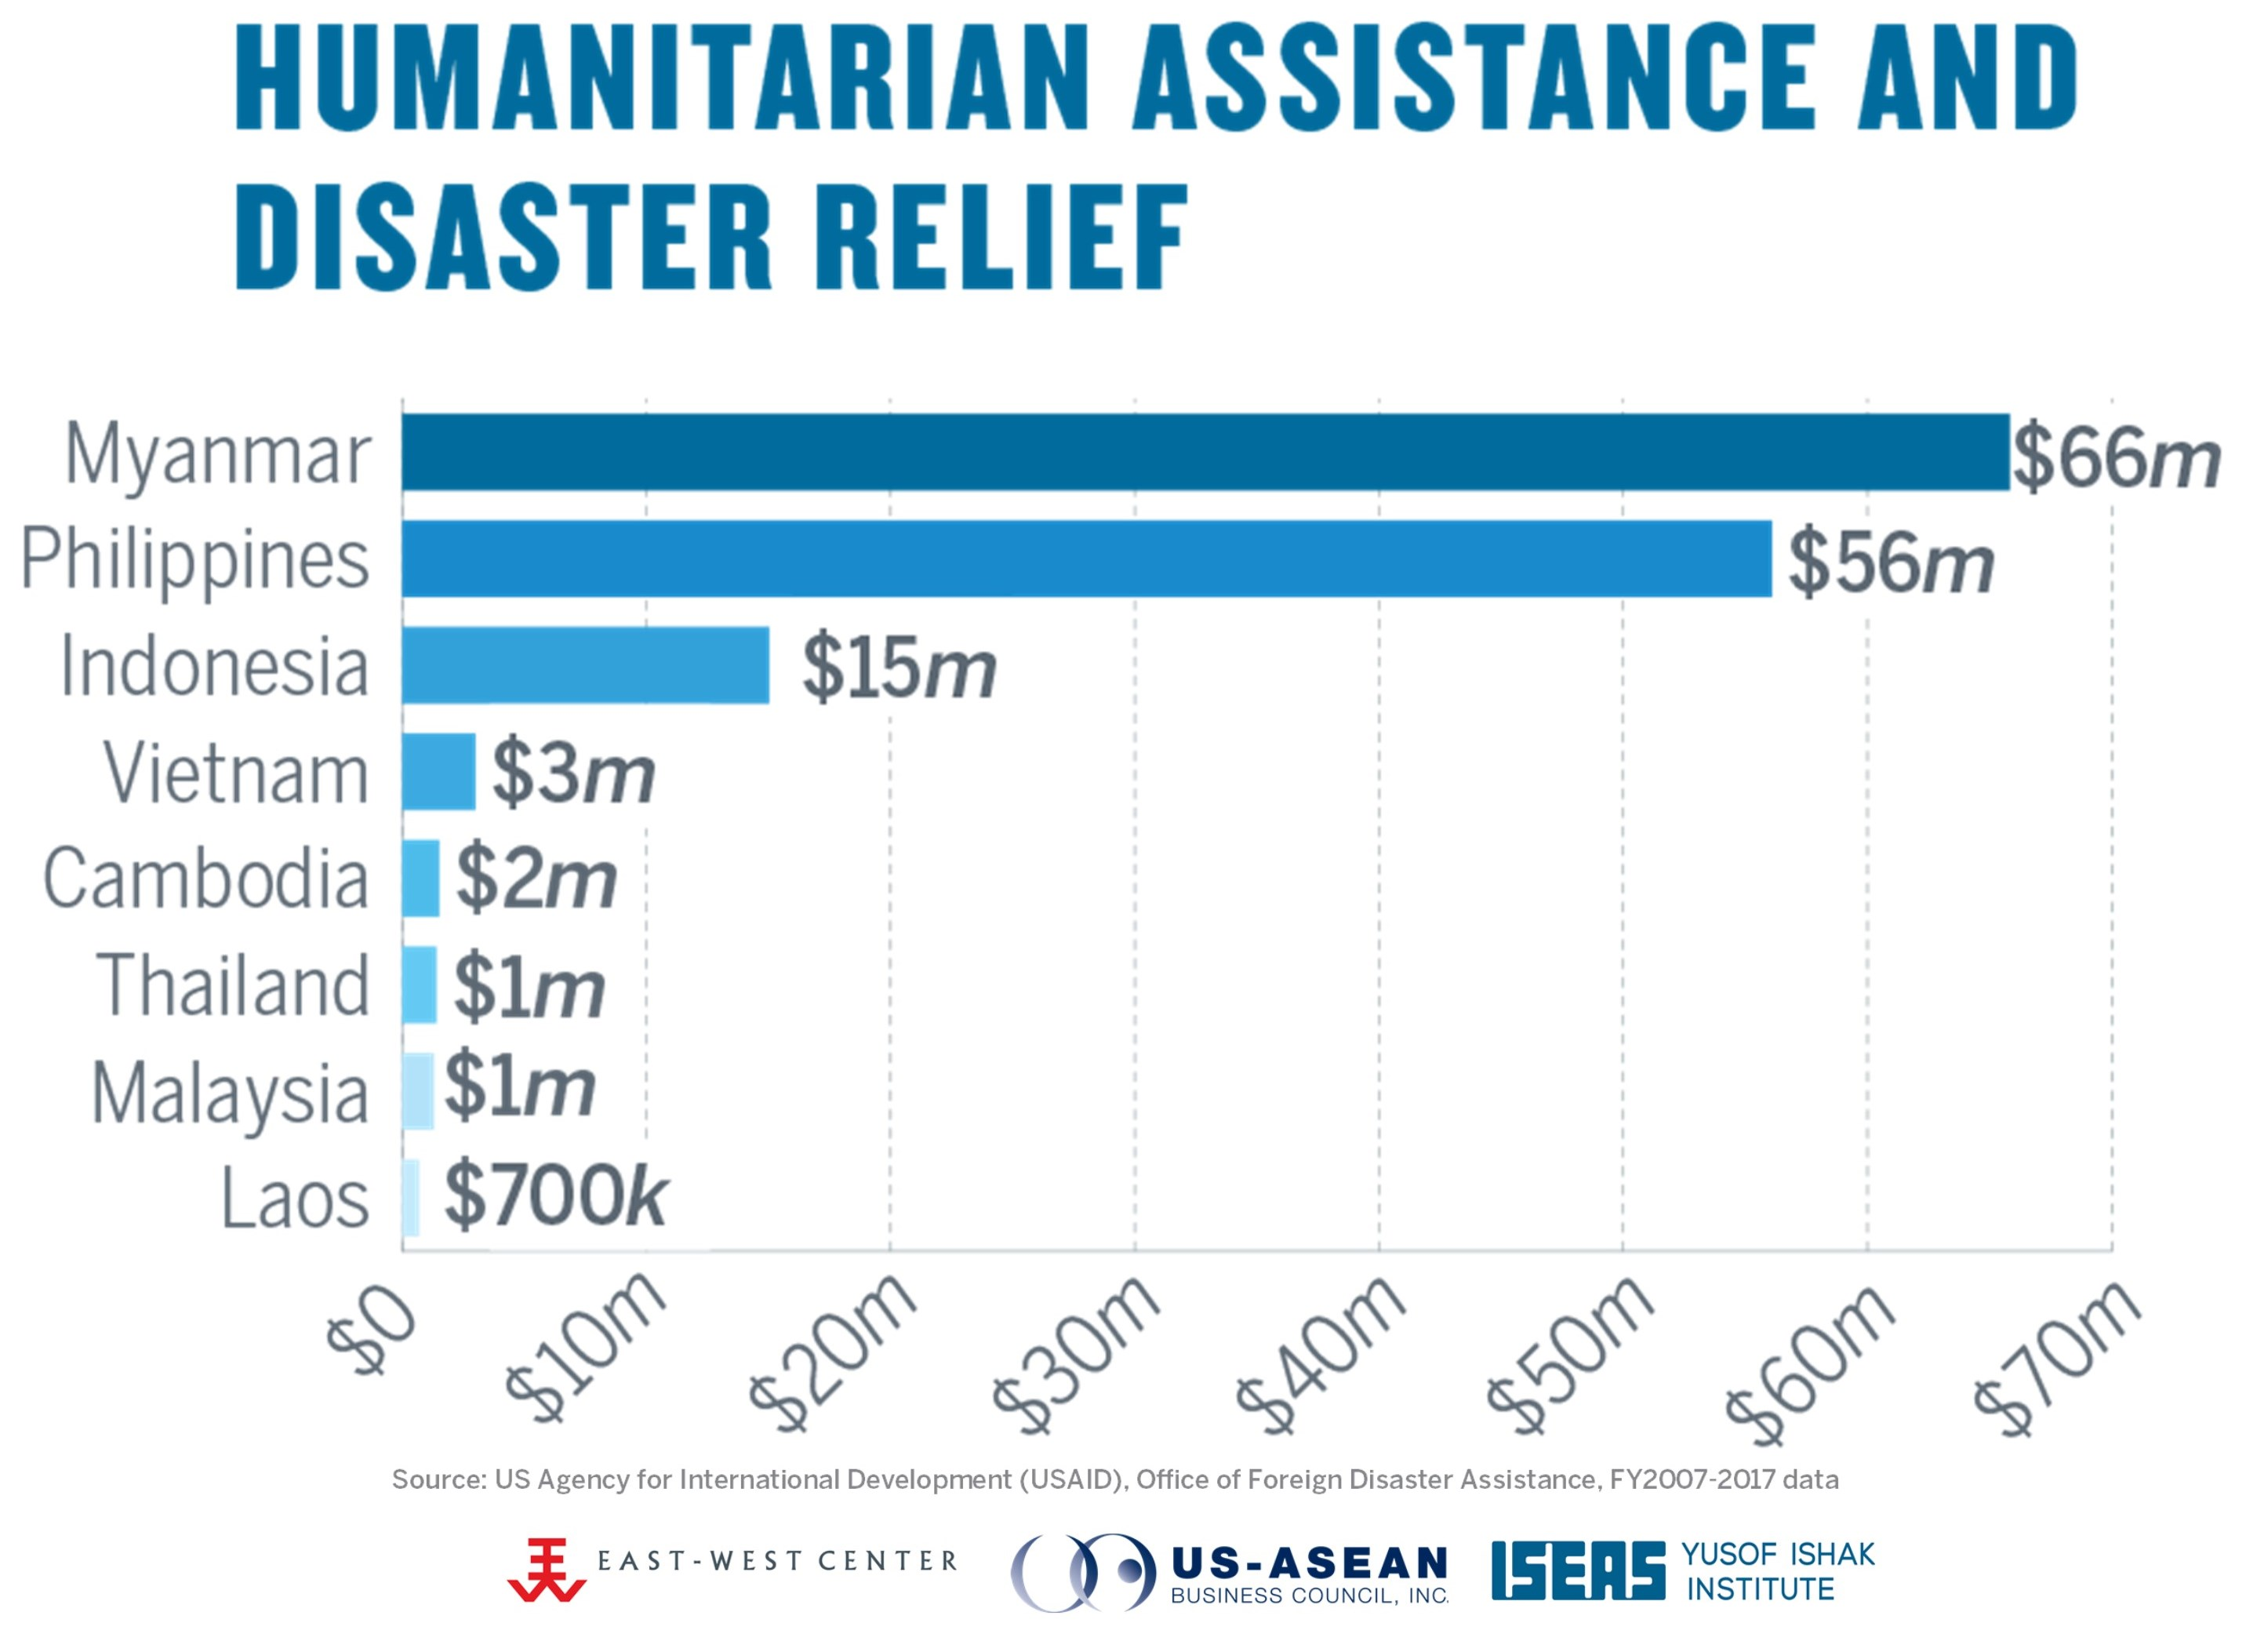 Humanitarian Assistance and Disaster Relief